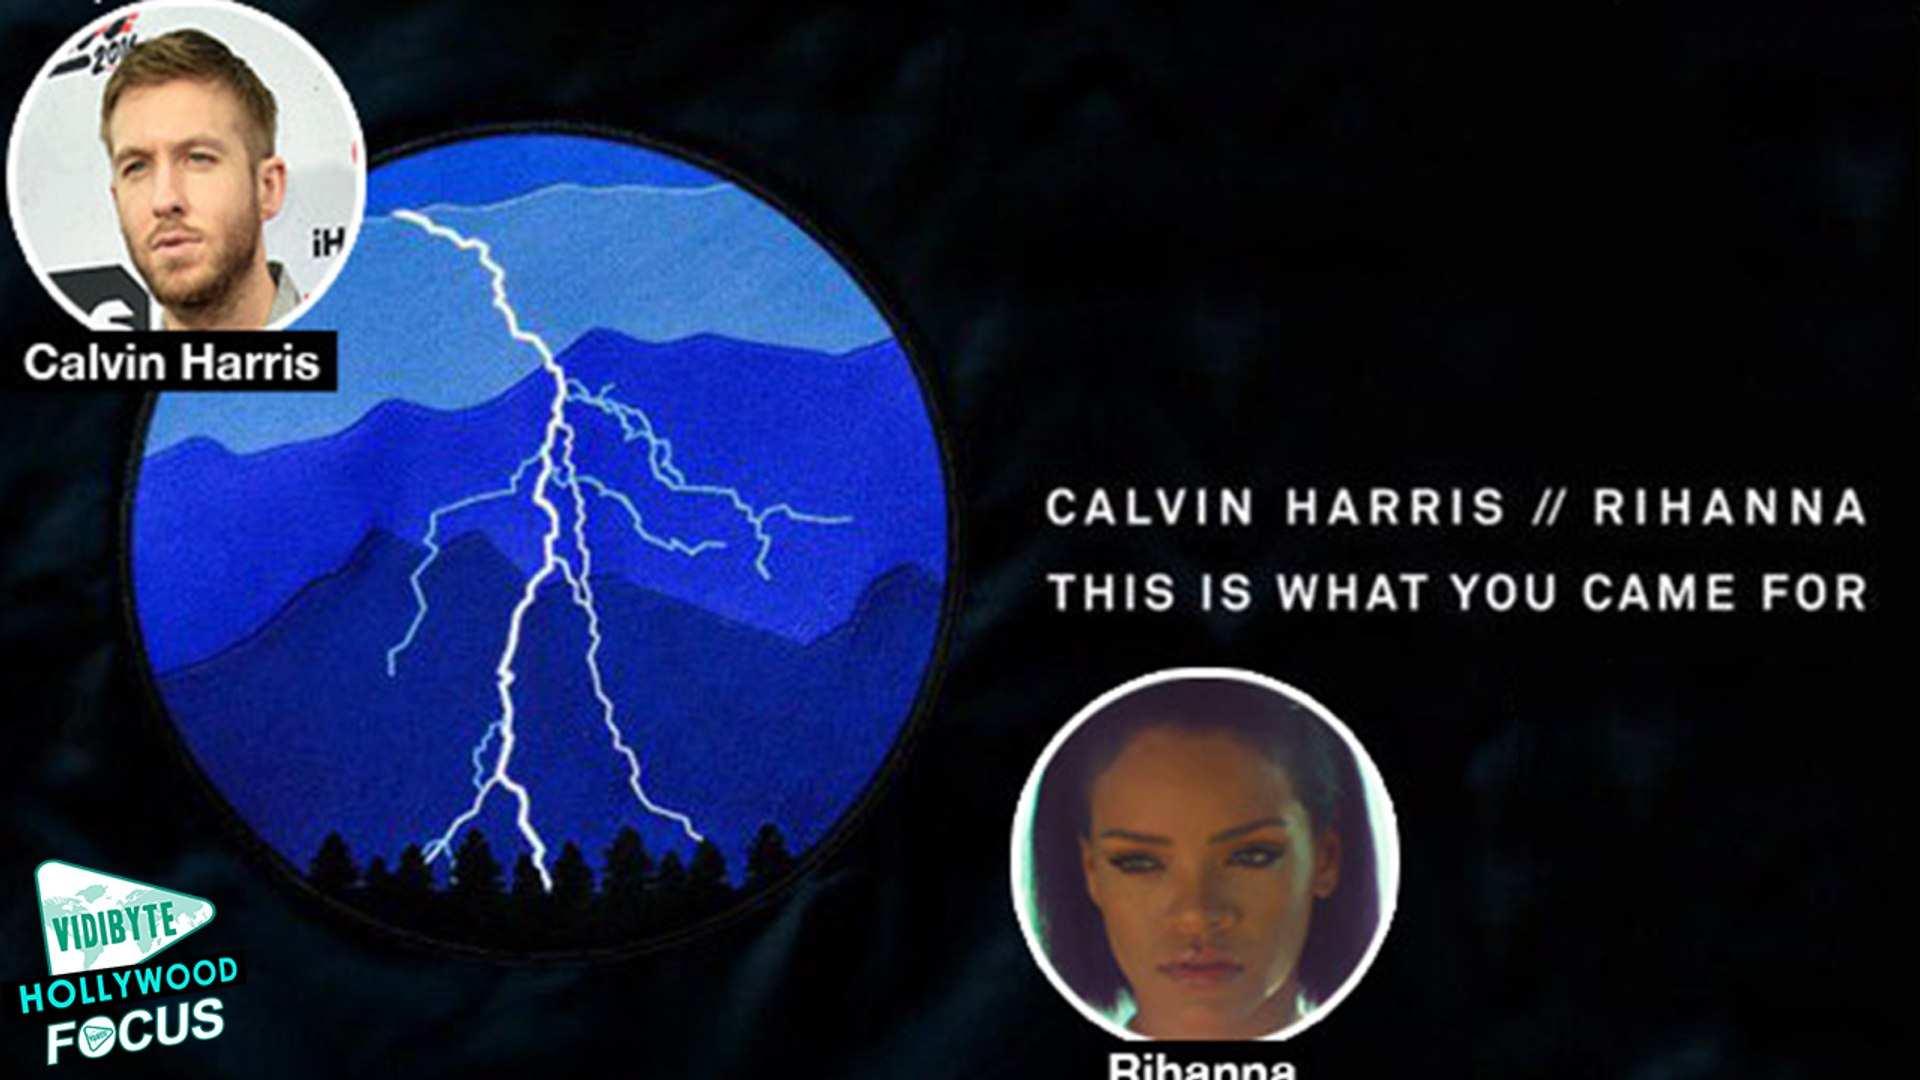 Calvin Harris and Rihanna Releasing New Song Together